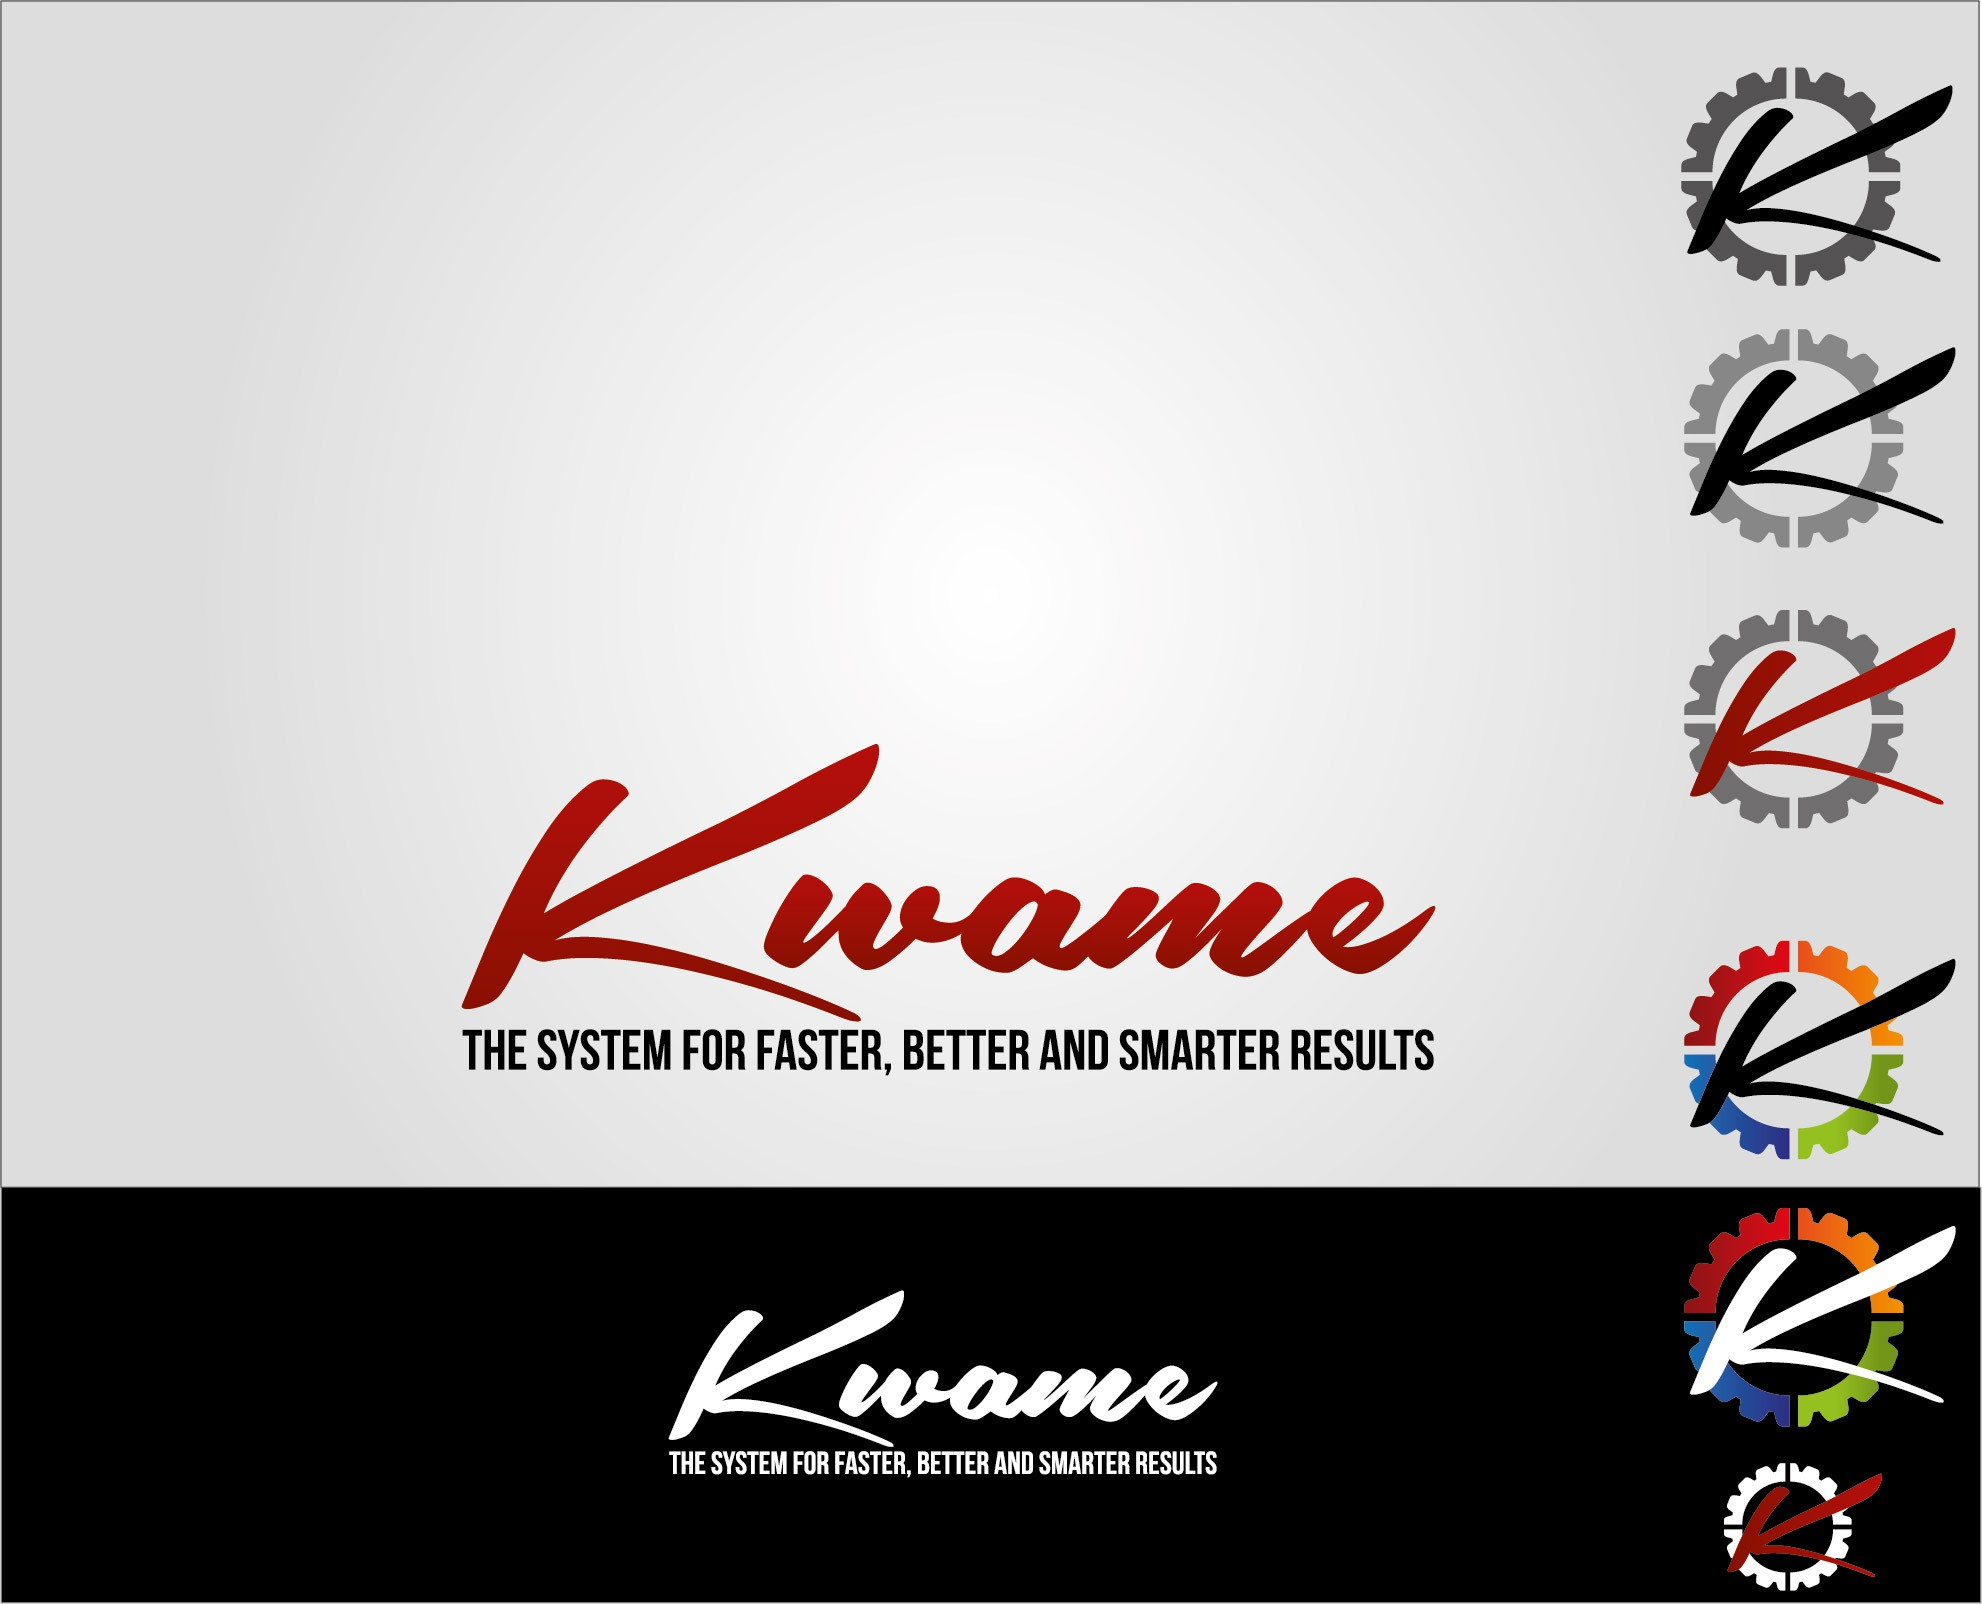 Help Kwame  with a new logo